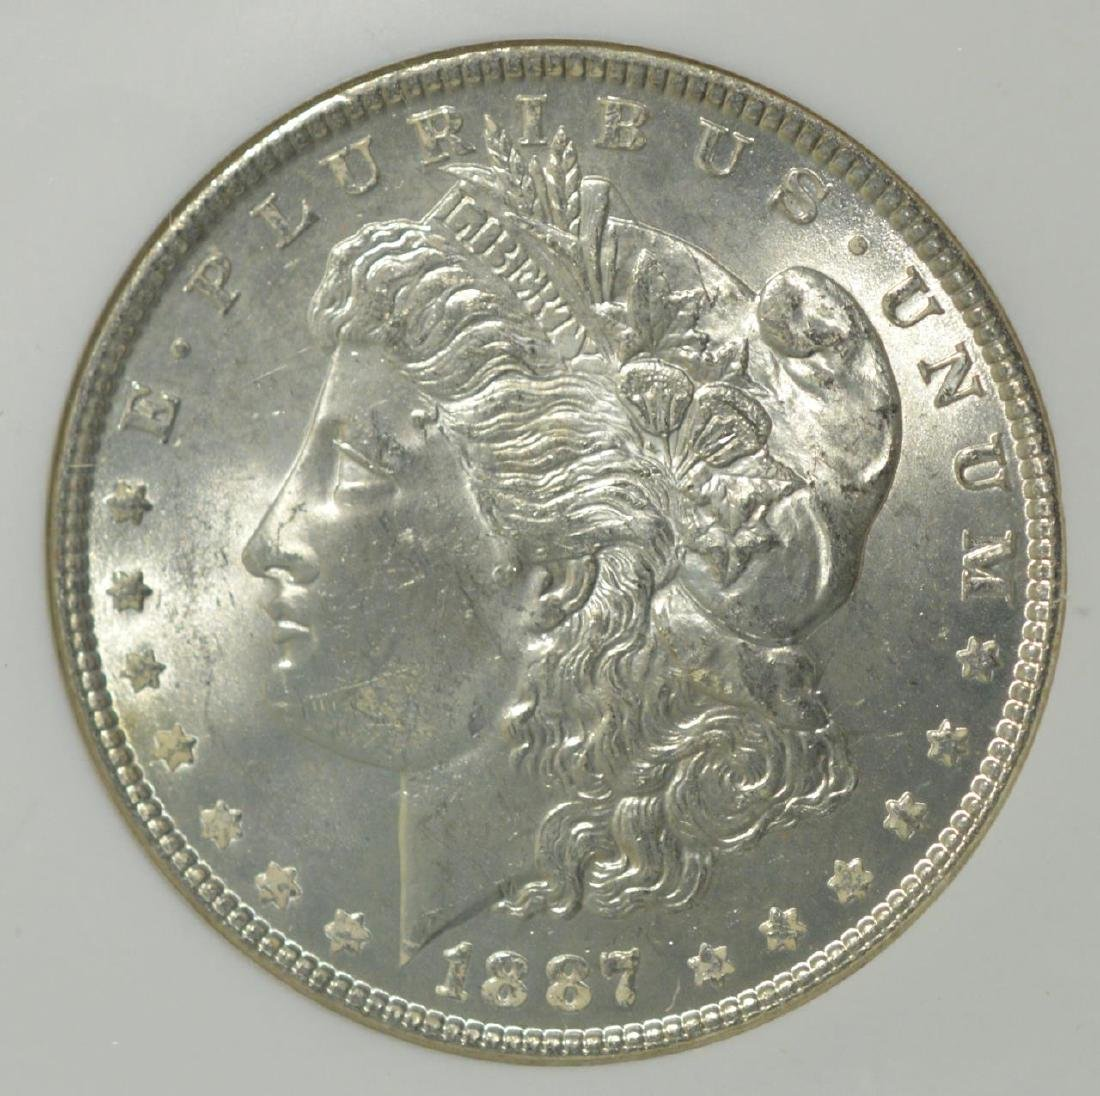 1887 Morgan Silver Dollar NGC MS 63